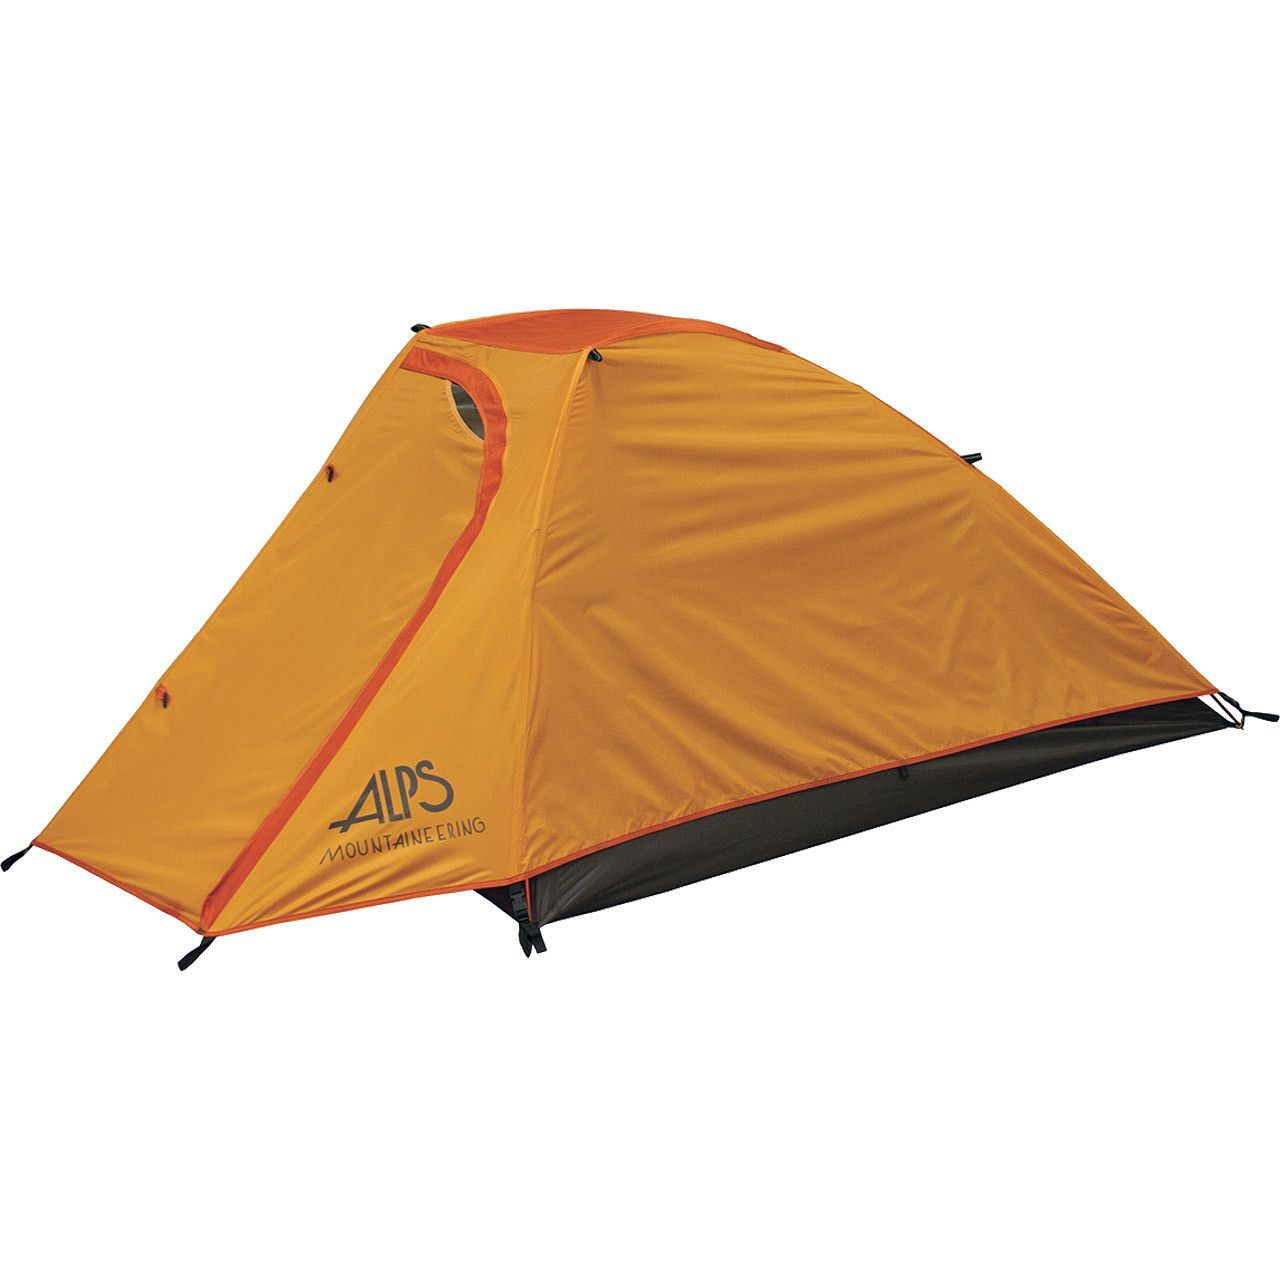 Alps Mountaineering Zephyr 1 Tent Best Tents For Camping Tent Backpacking Tent